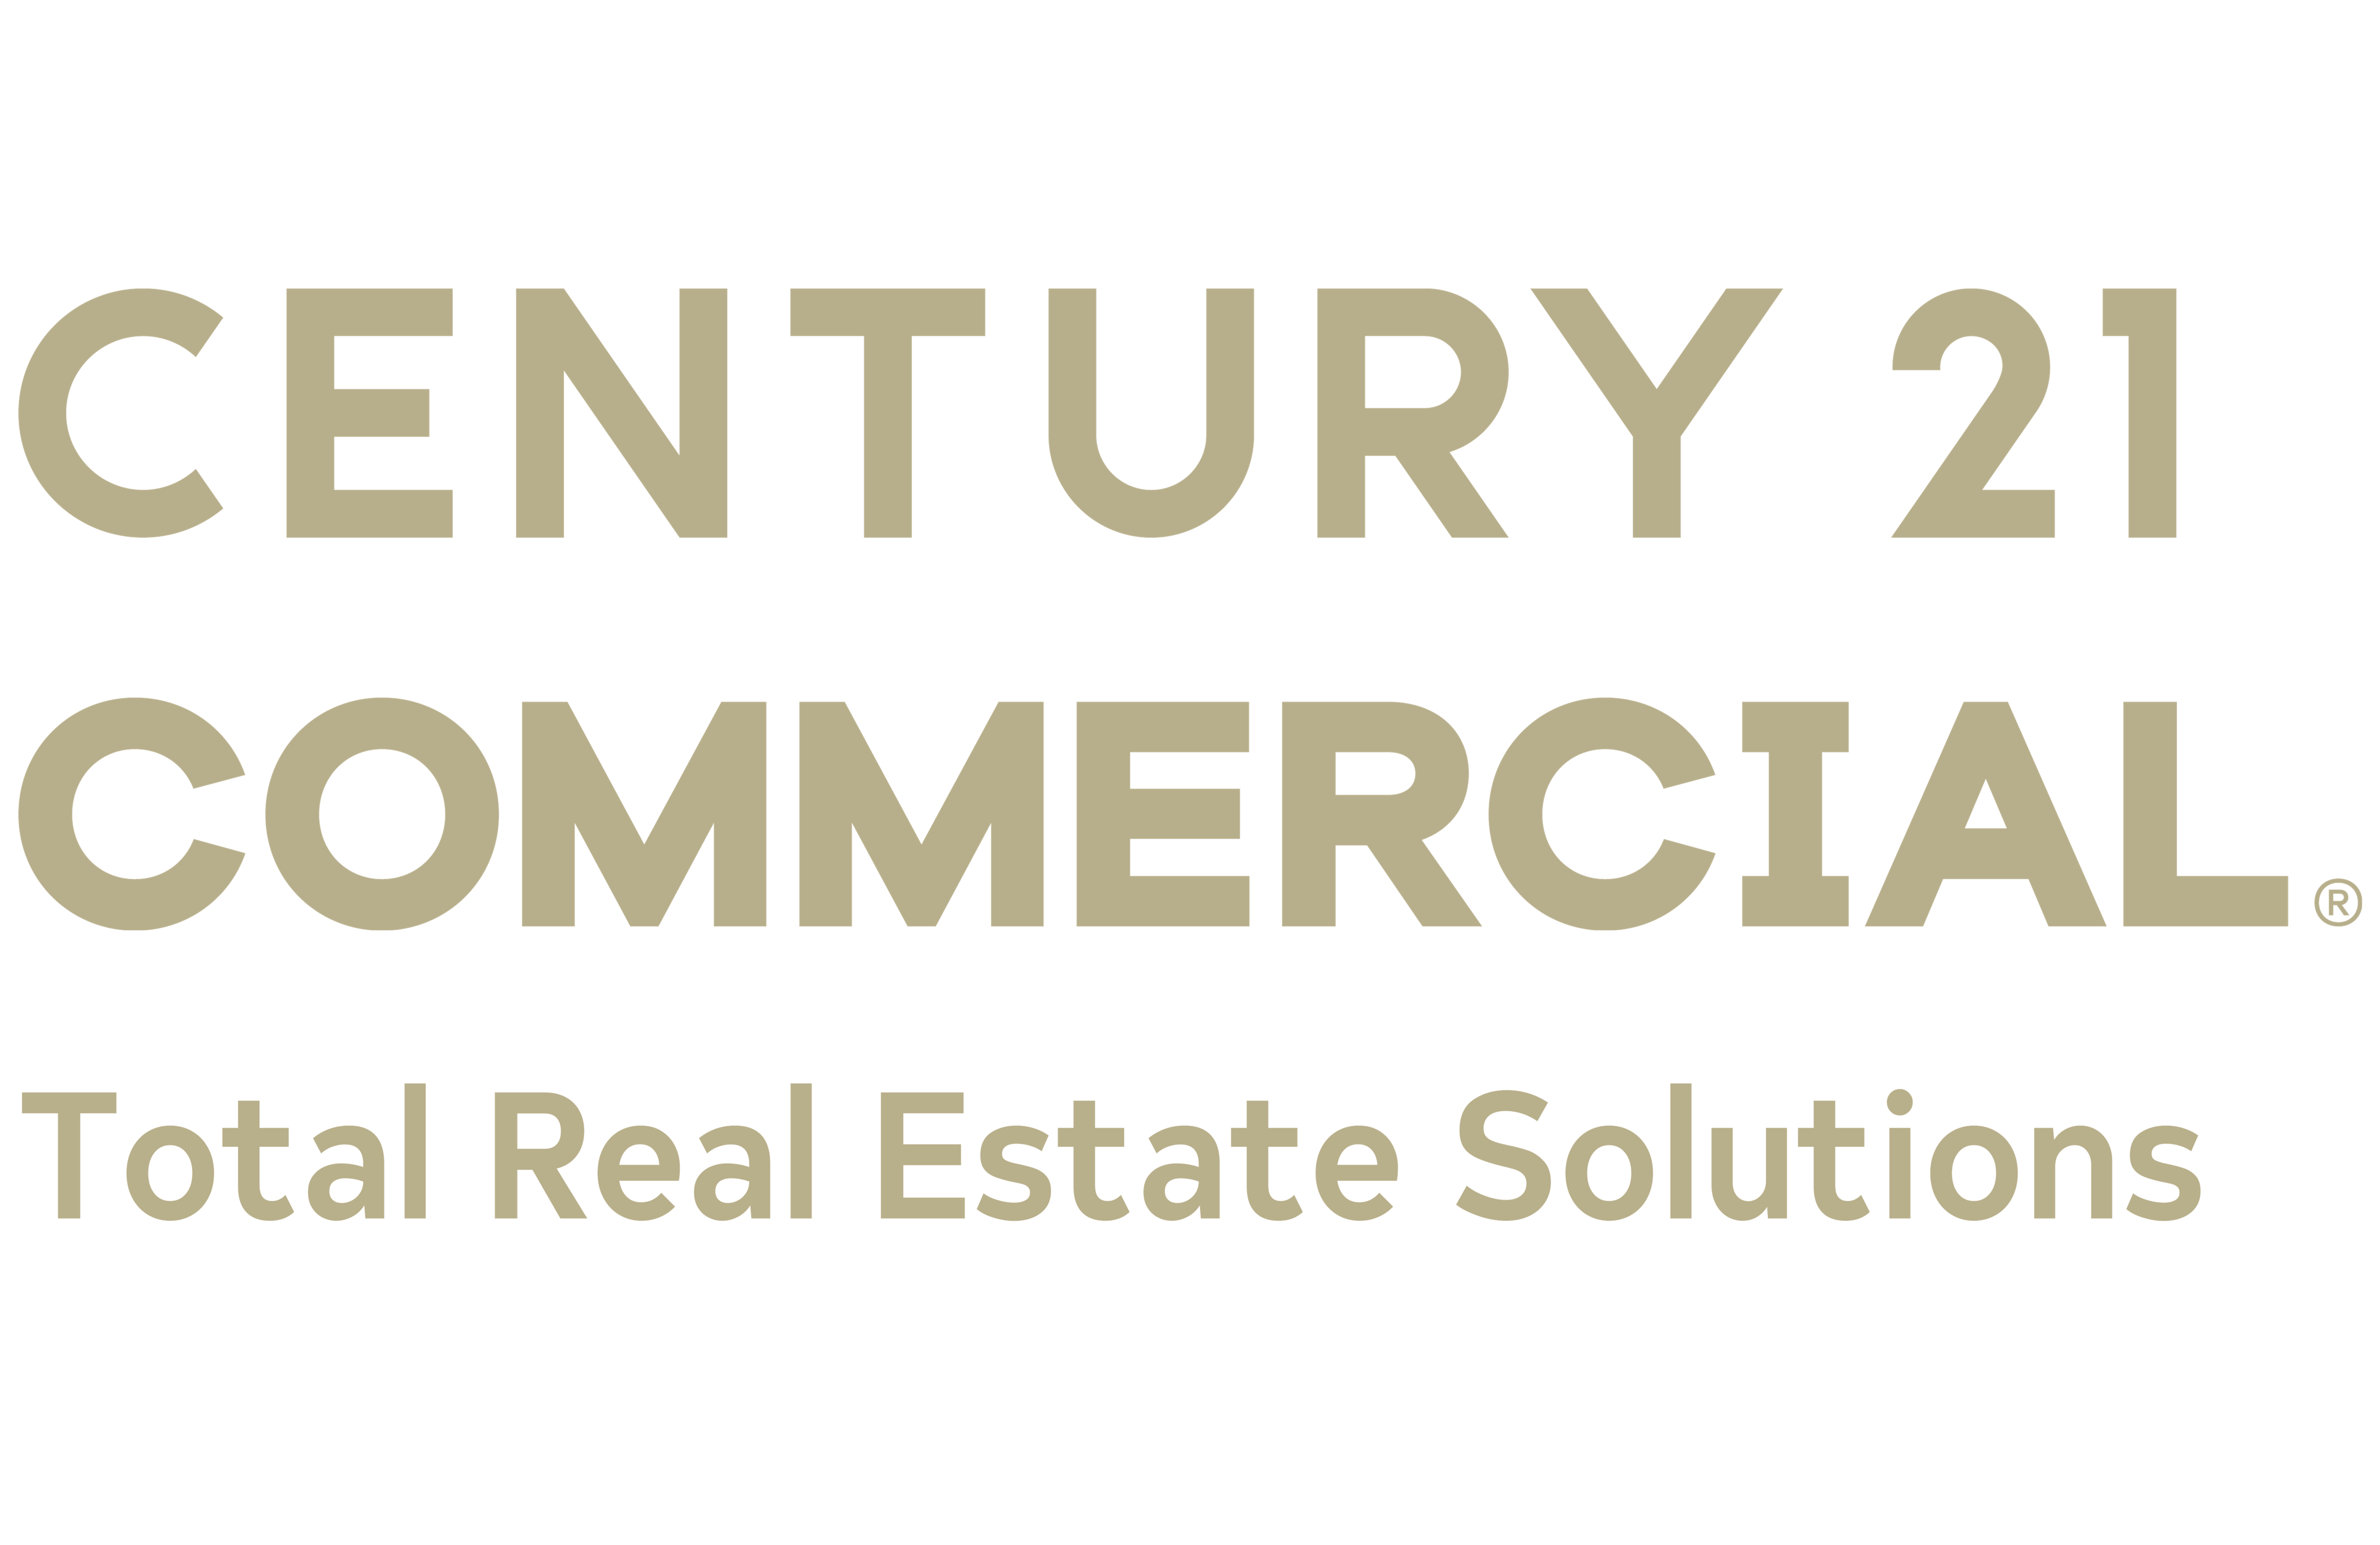 CENTURY 21 Total Real Estate Solutions